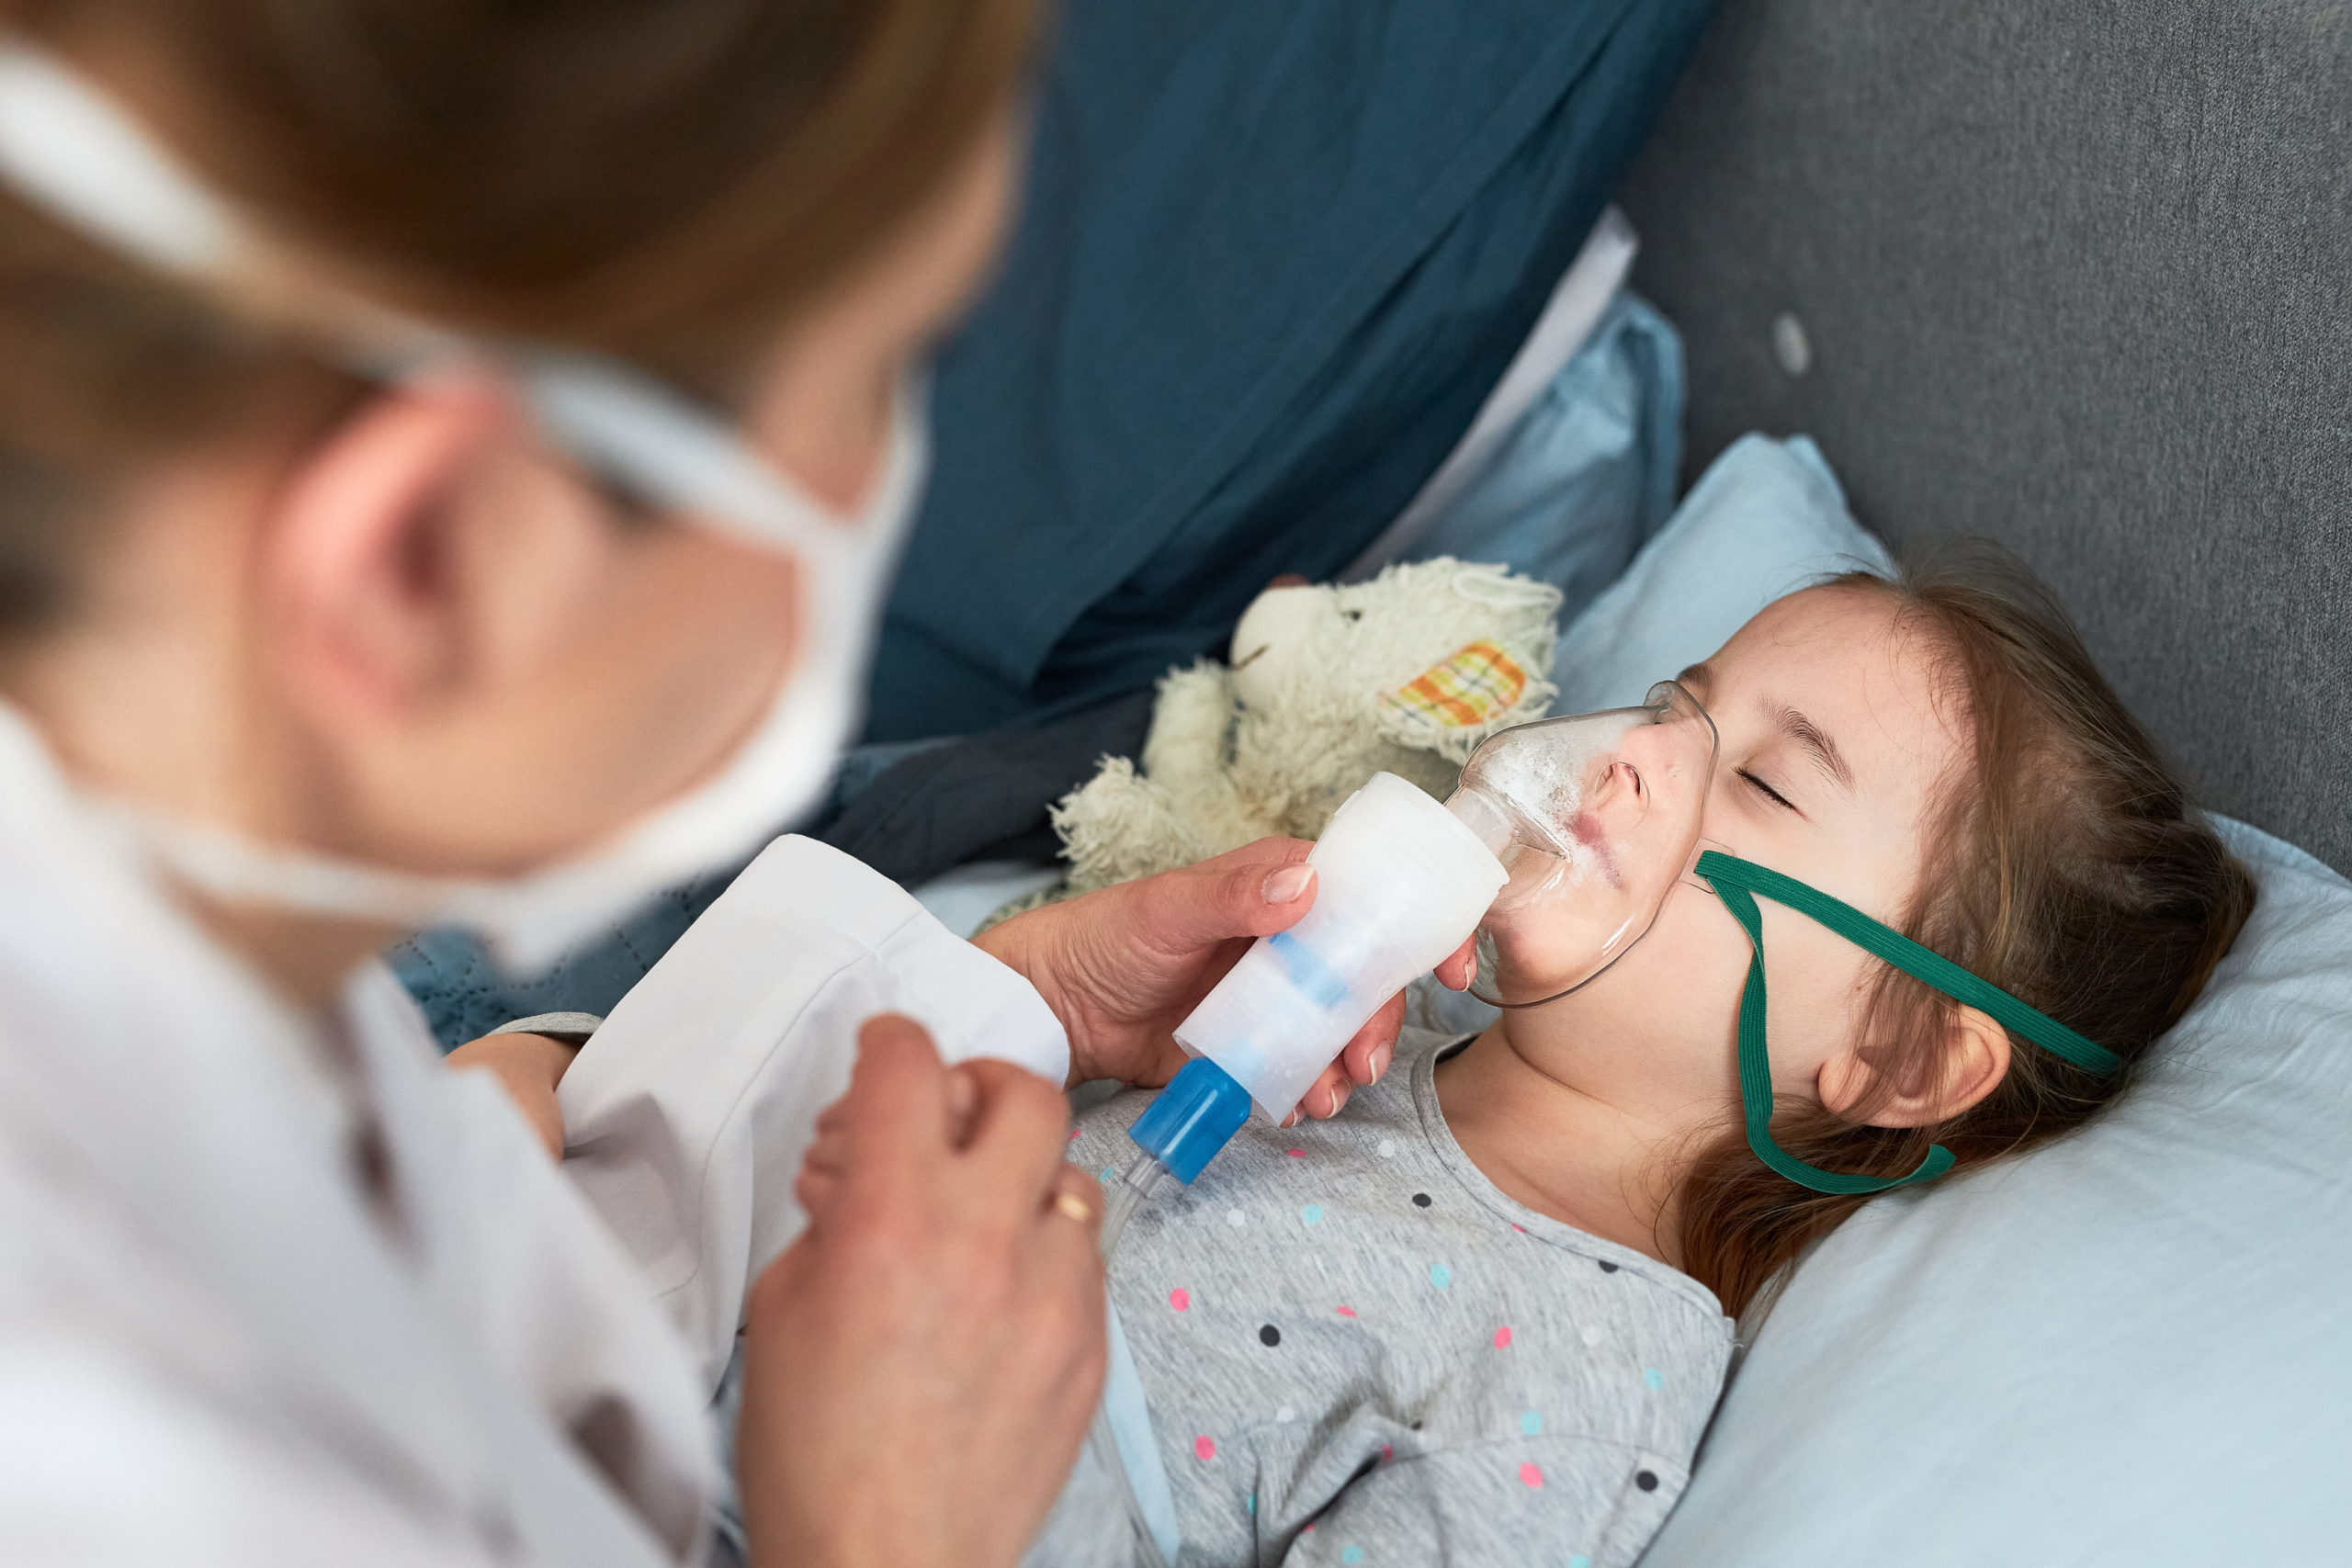 Rate of pediatric COVID-19 hospitalizations has increased